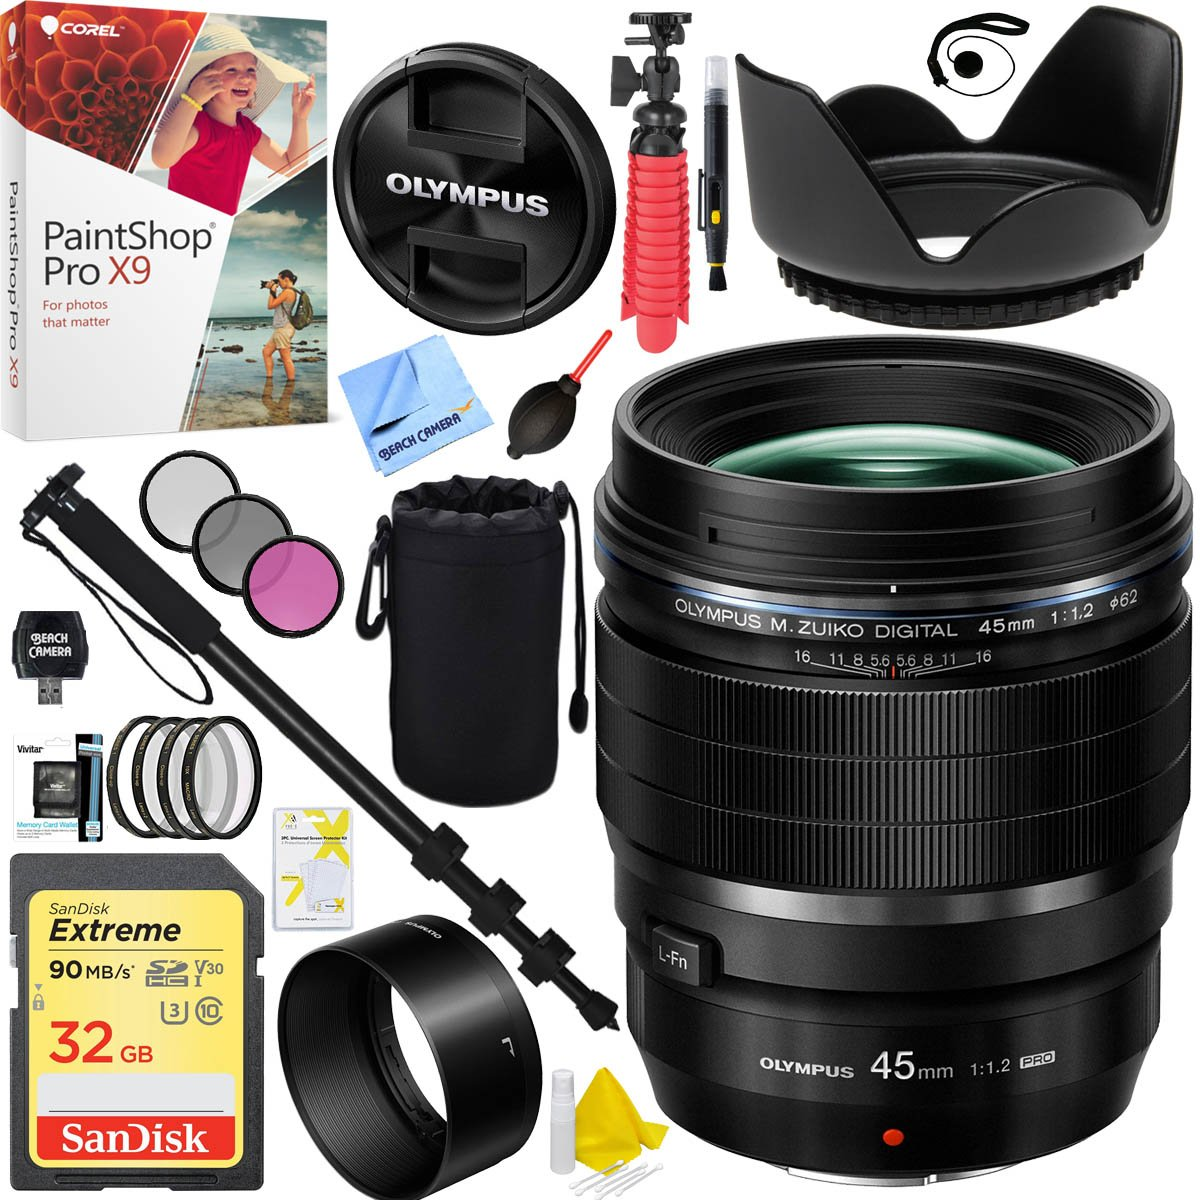 Olympus M.Zuiko Digital ED 45mm f1.2 PRO Lens V311090BU000 with 32GB Extreme Memory Card Plus 62mm Filter Sets and Accessories Bundle by Olympus